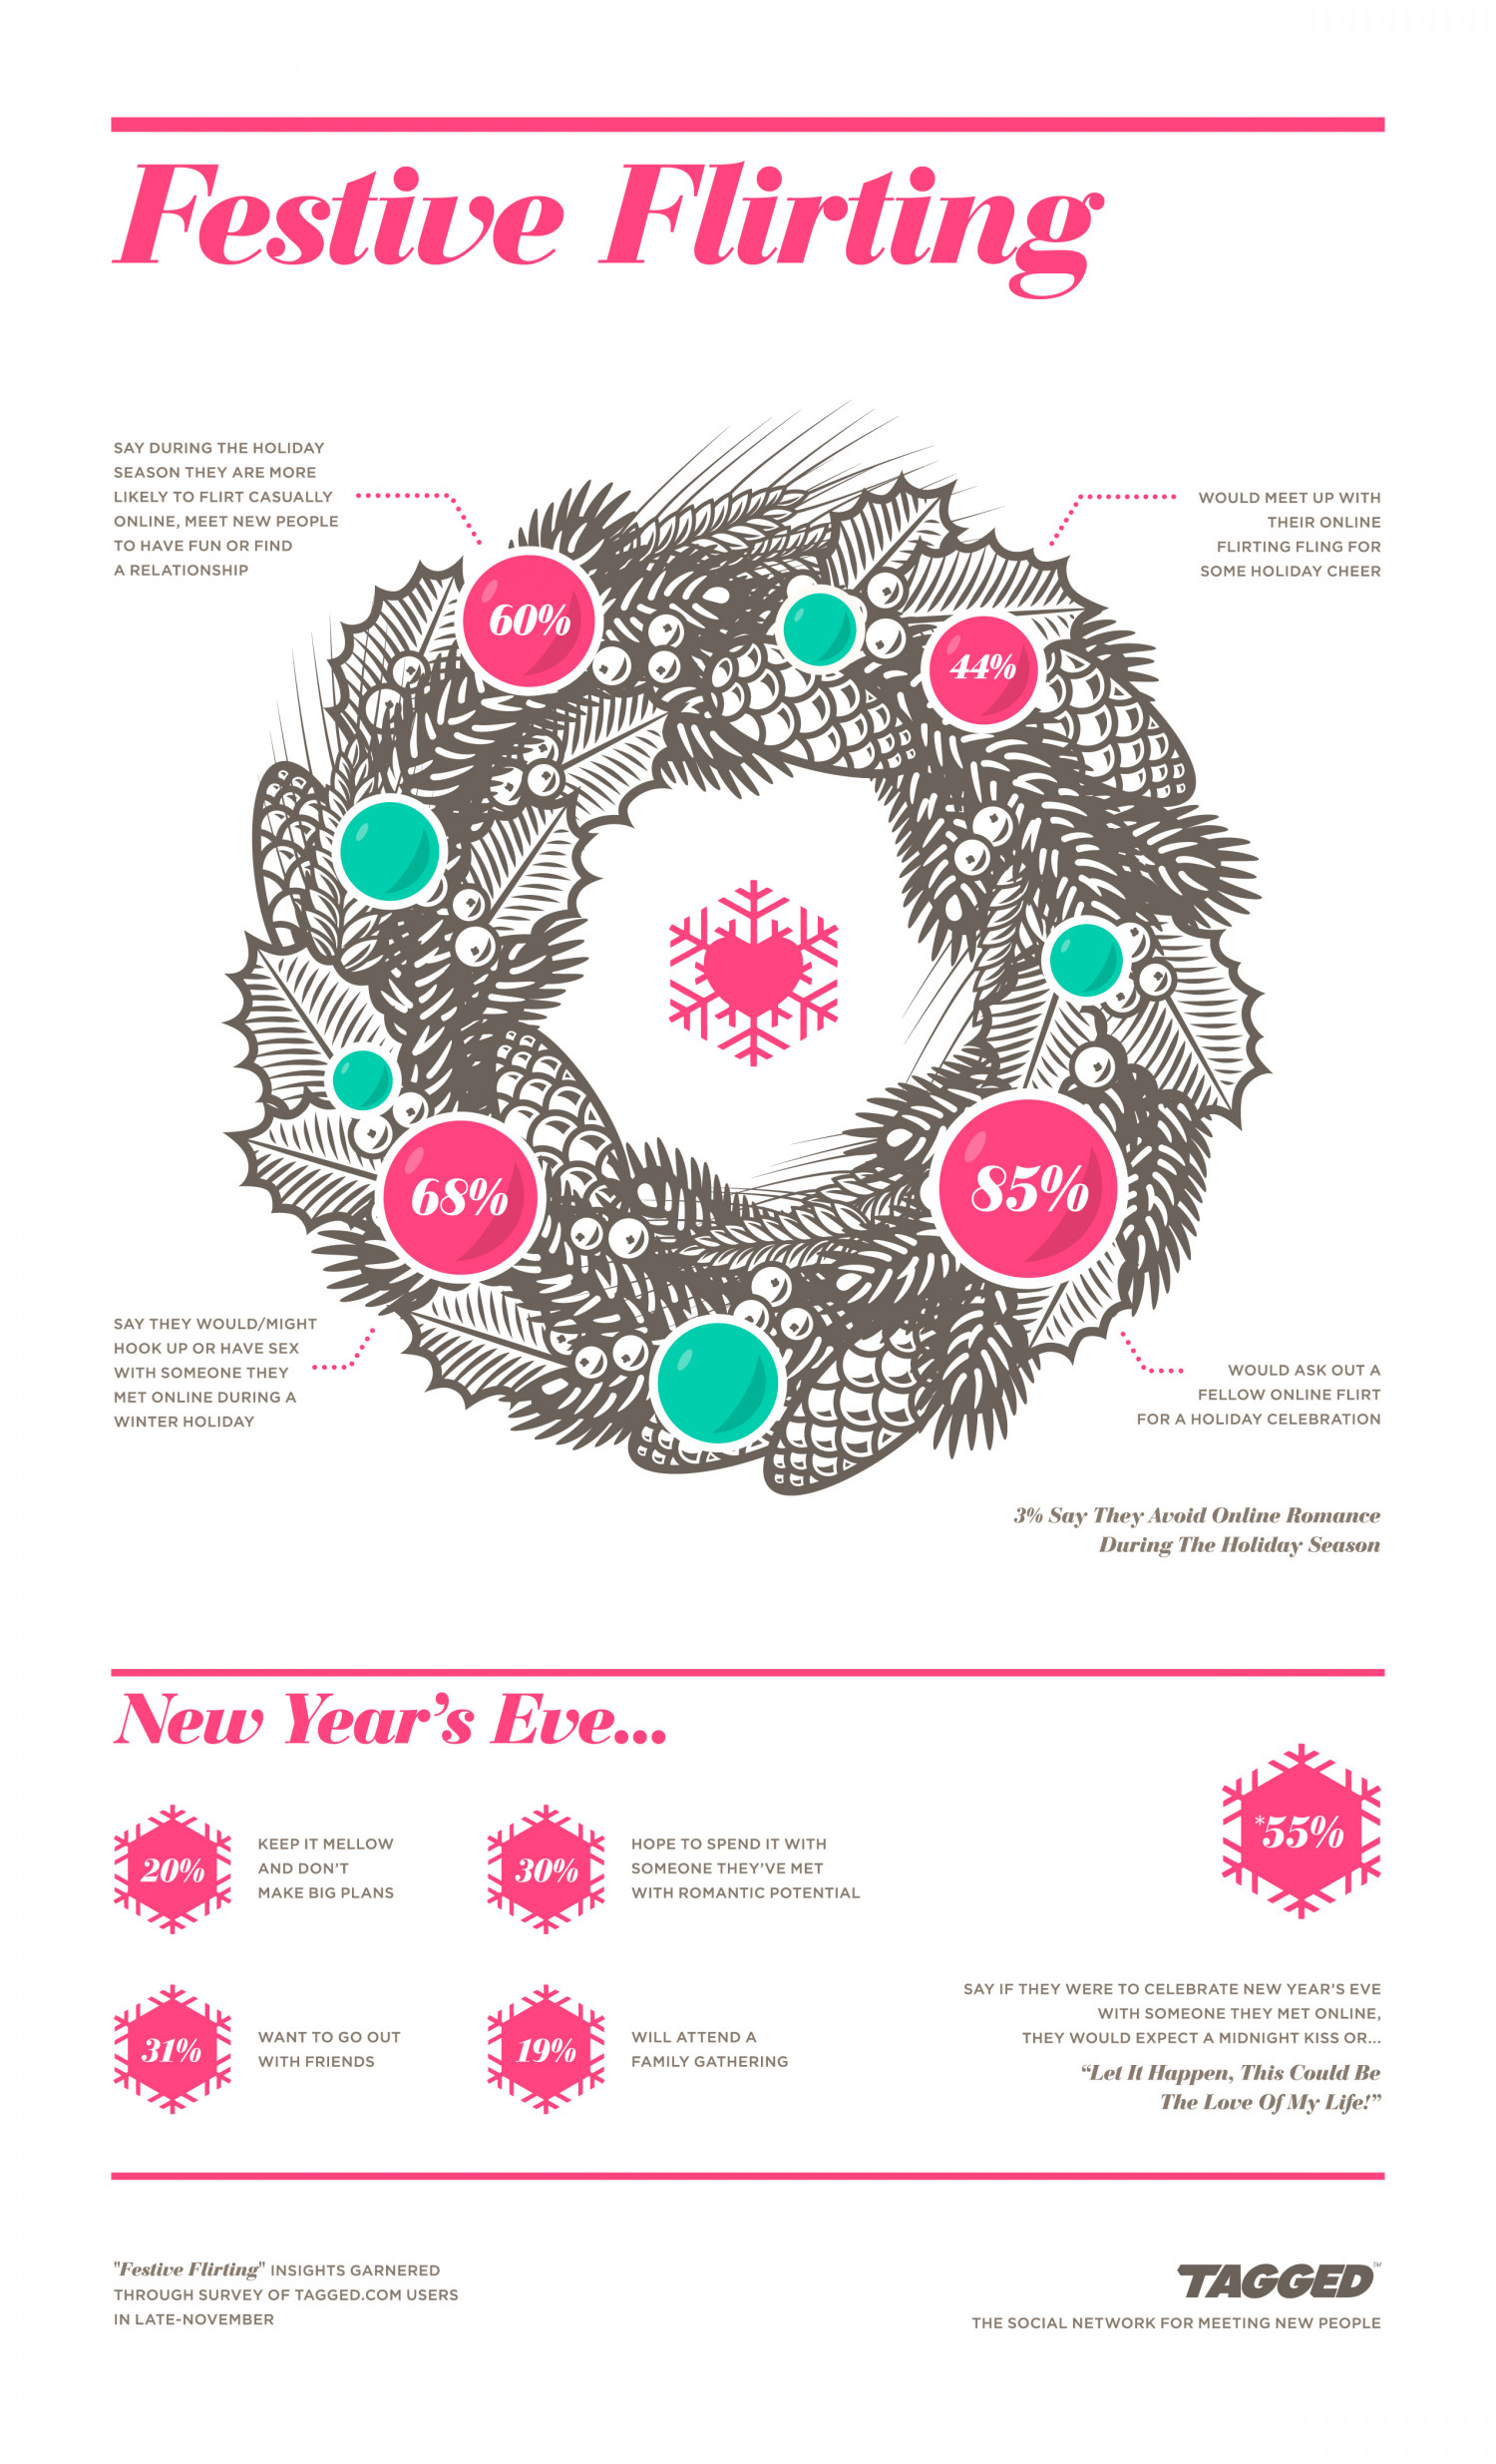 How We Festively Flirt During the Holiday Season Infographic